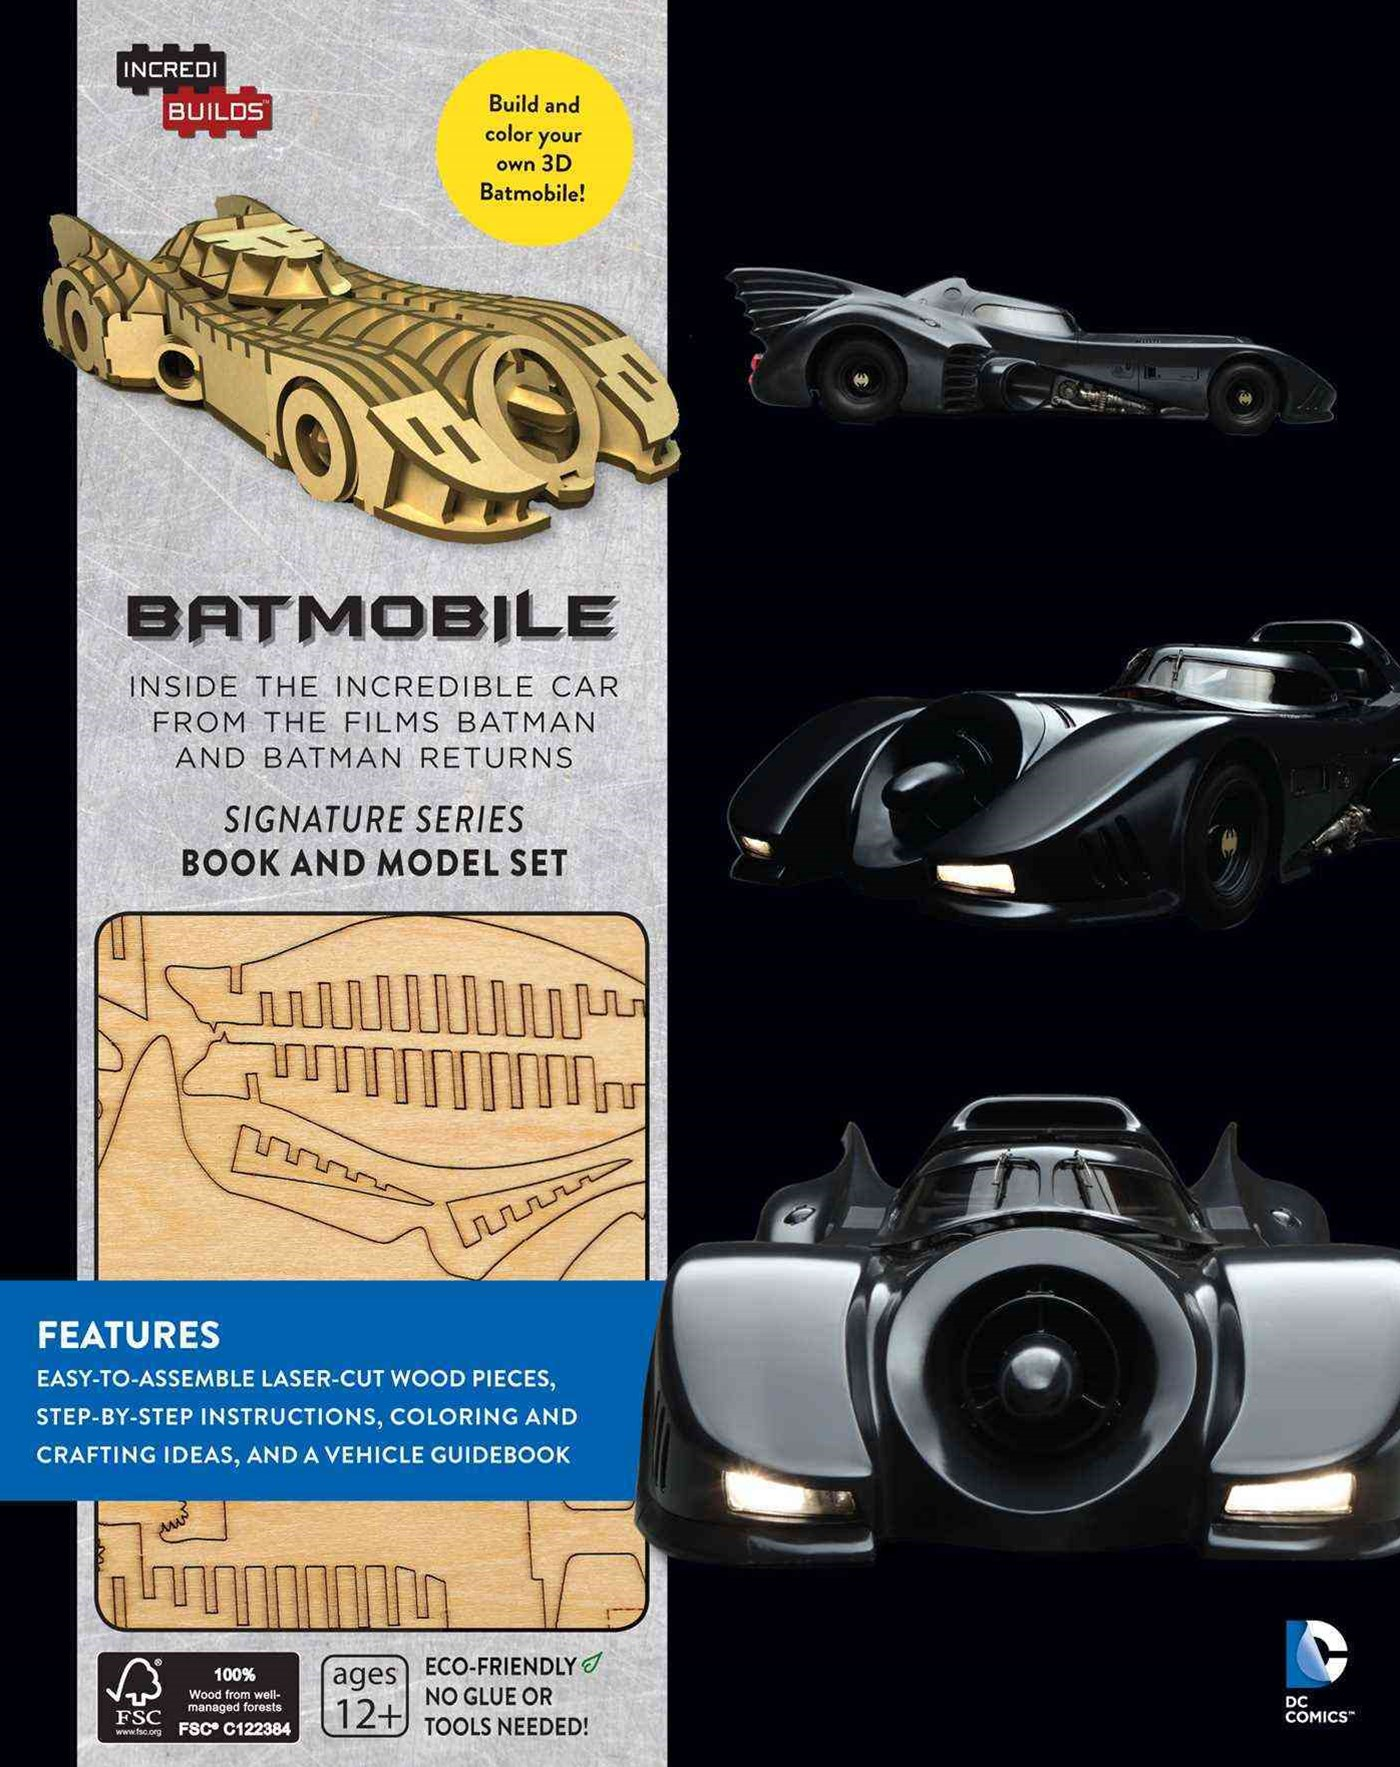 Incredibuilds: Batmobile Signature Serie